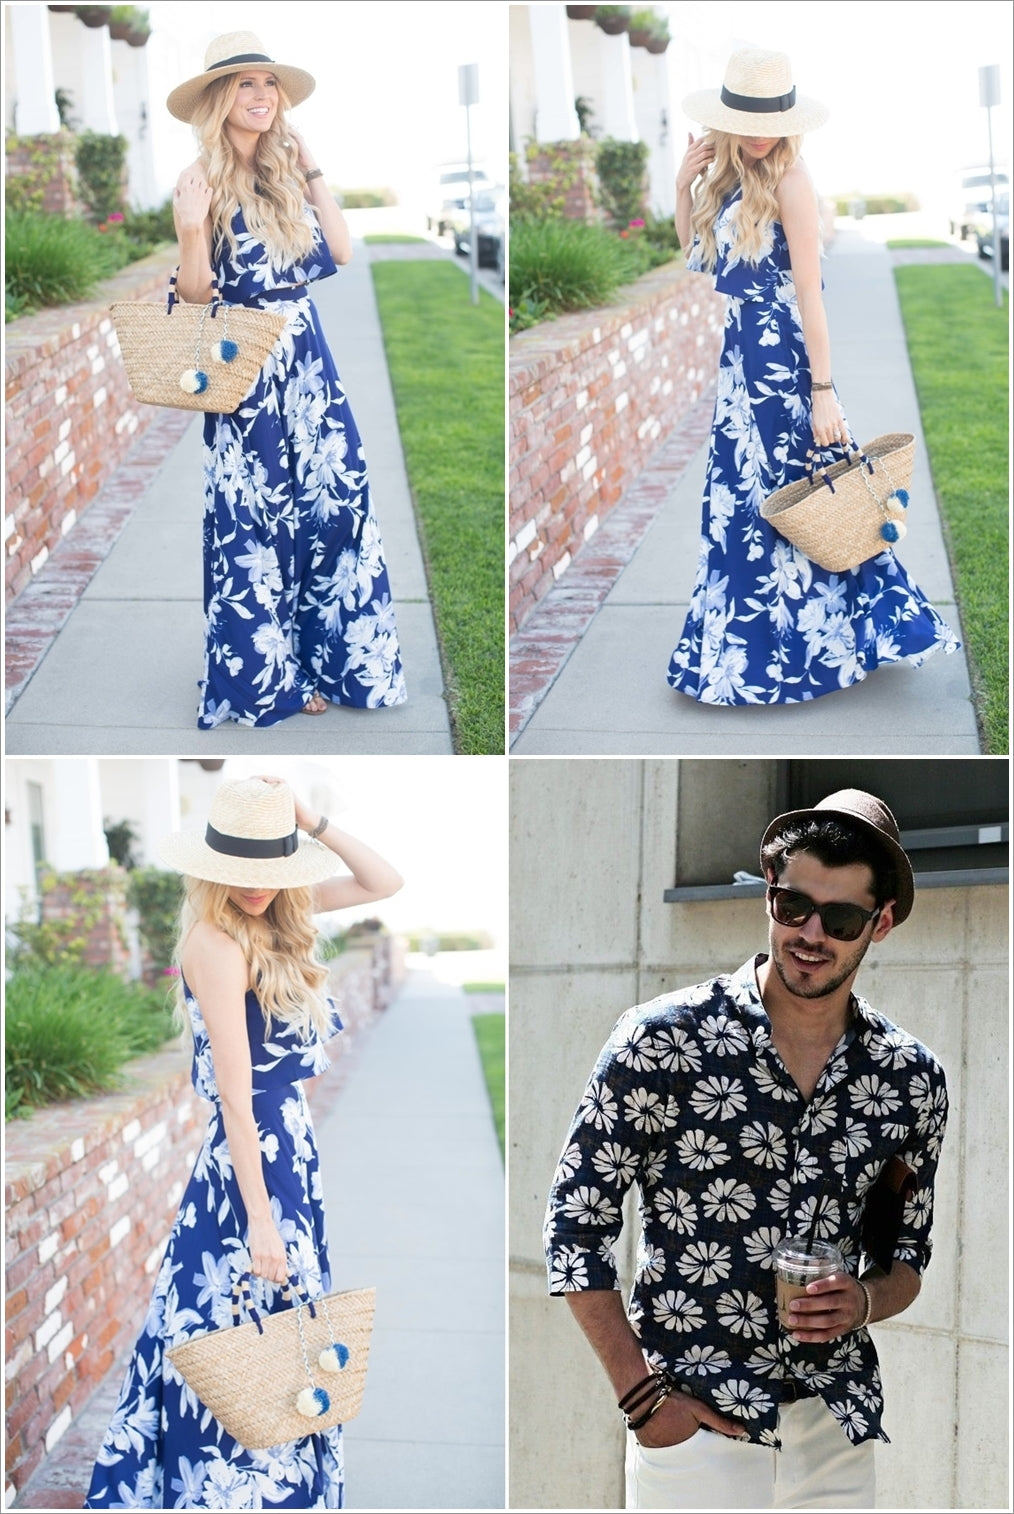 Bold prints and straw hats